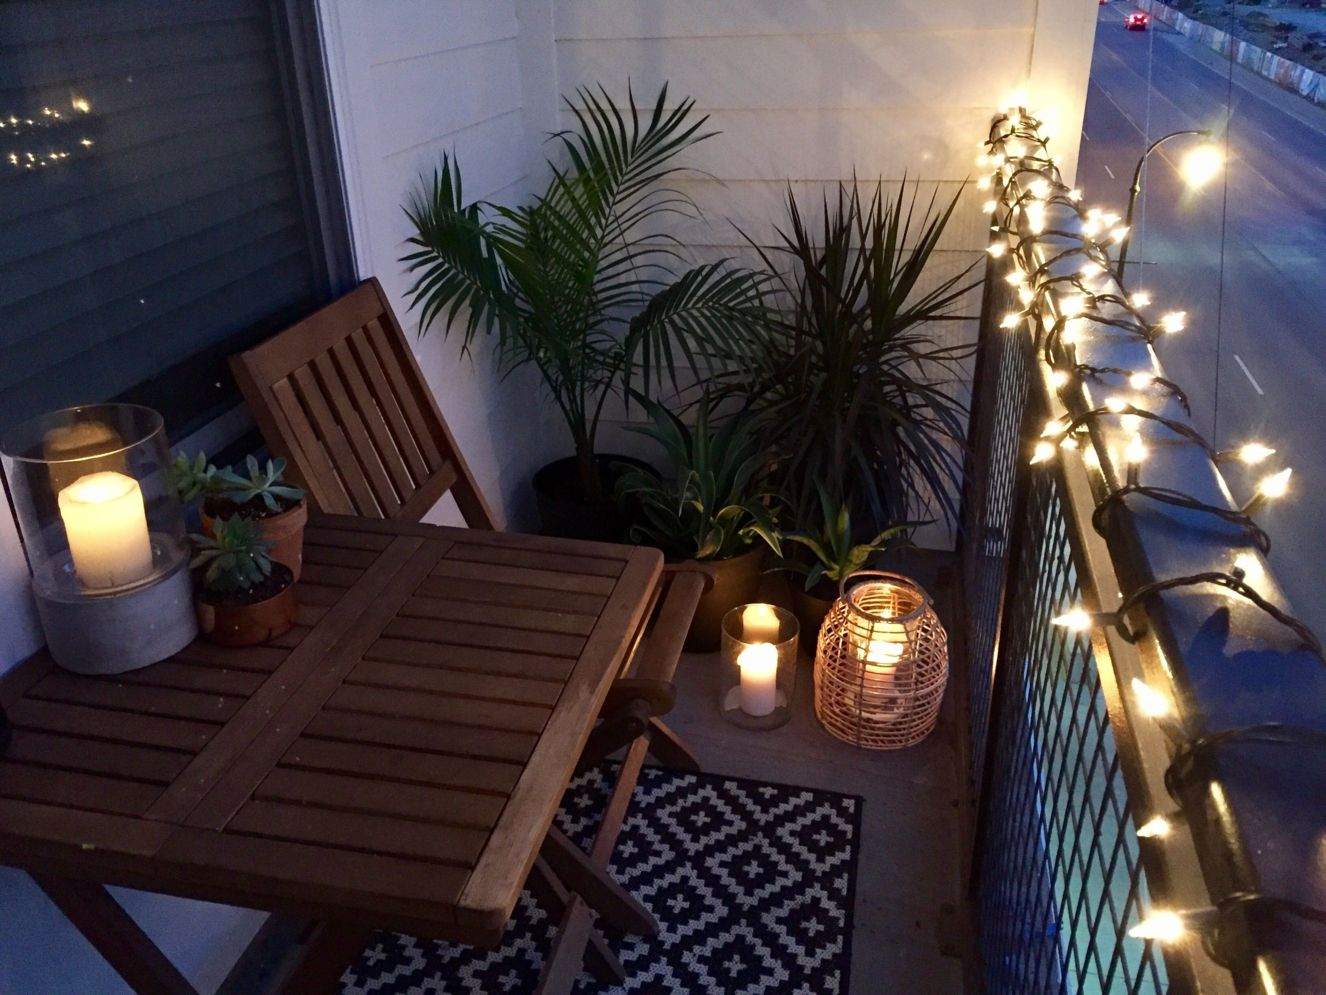 Clever apartment balcony conversion maximizing small space into functional living area Image 31